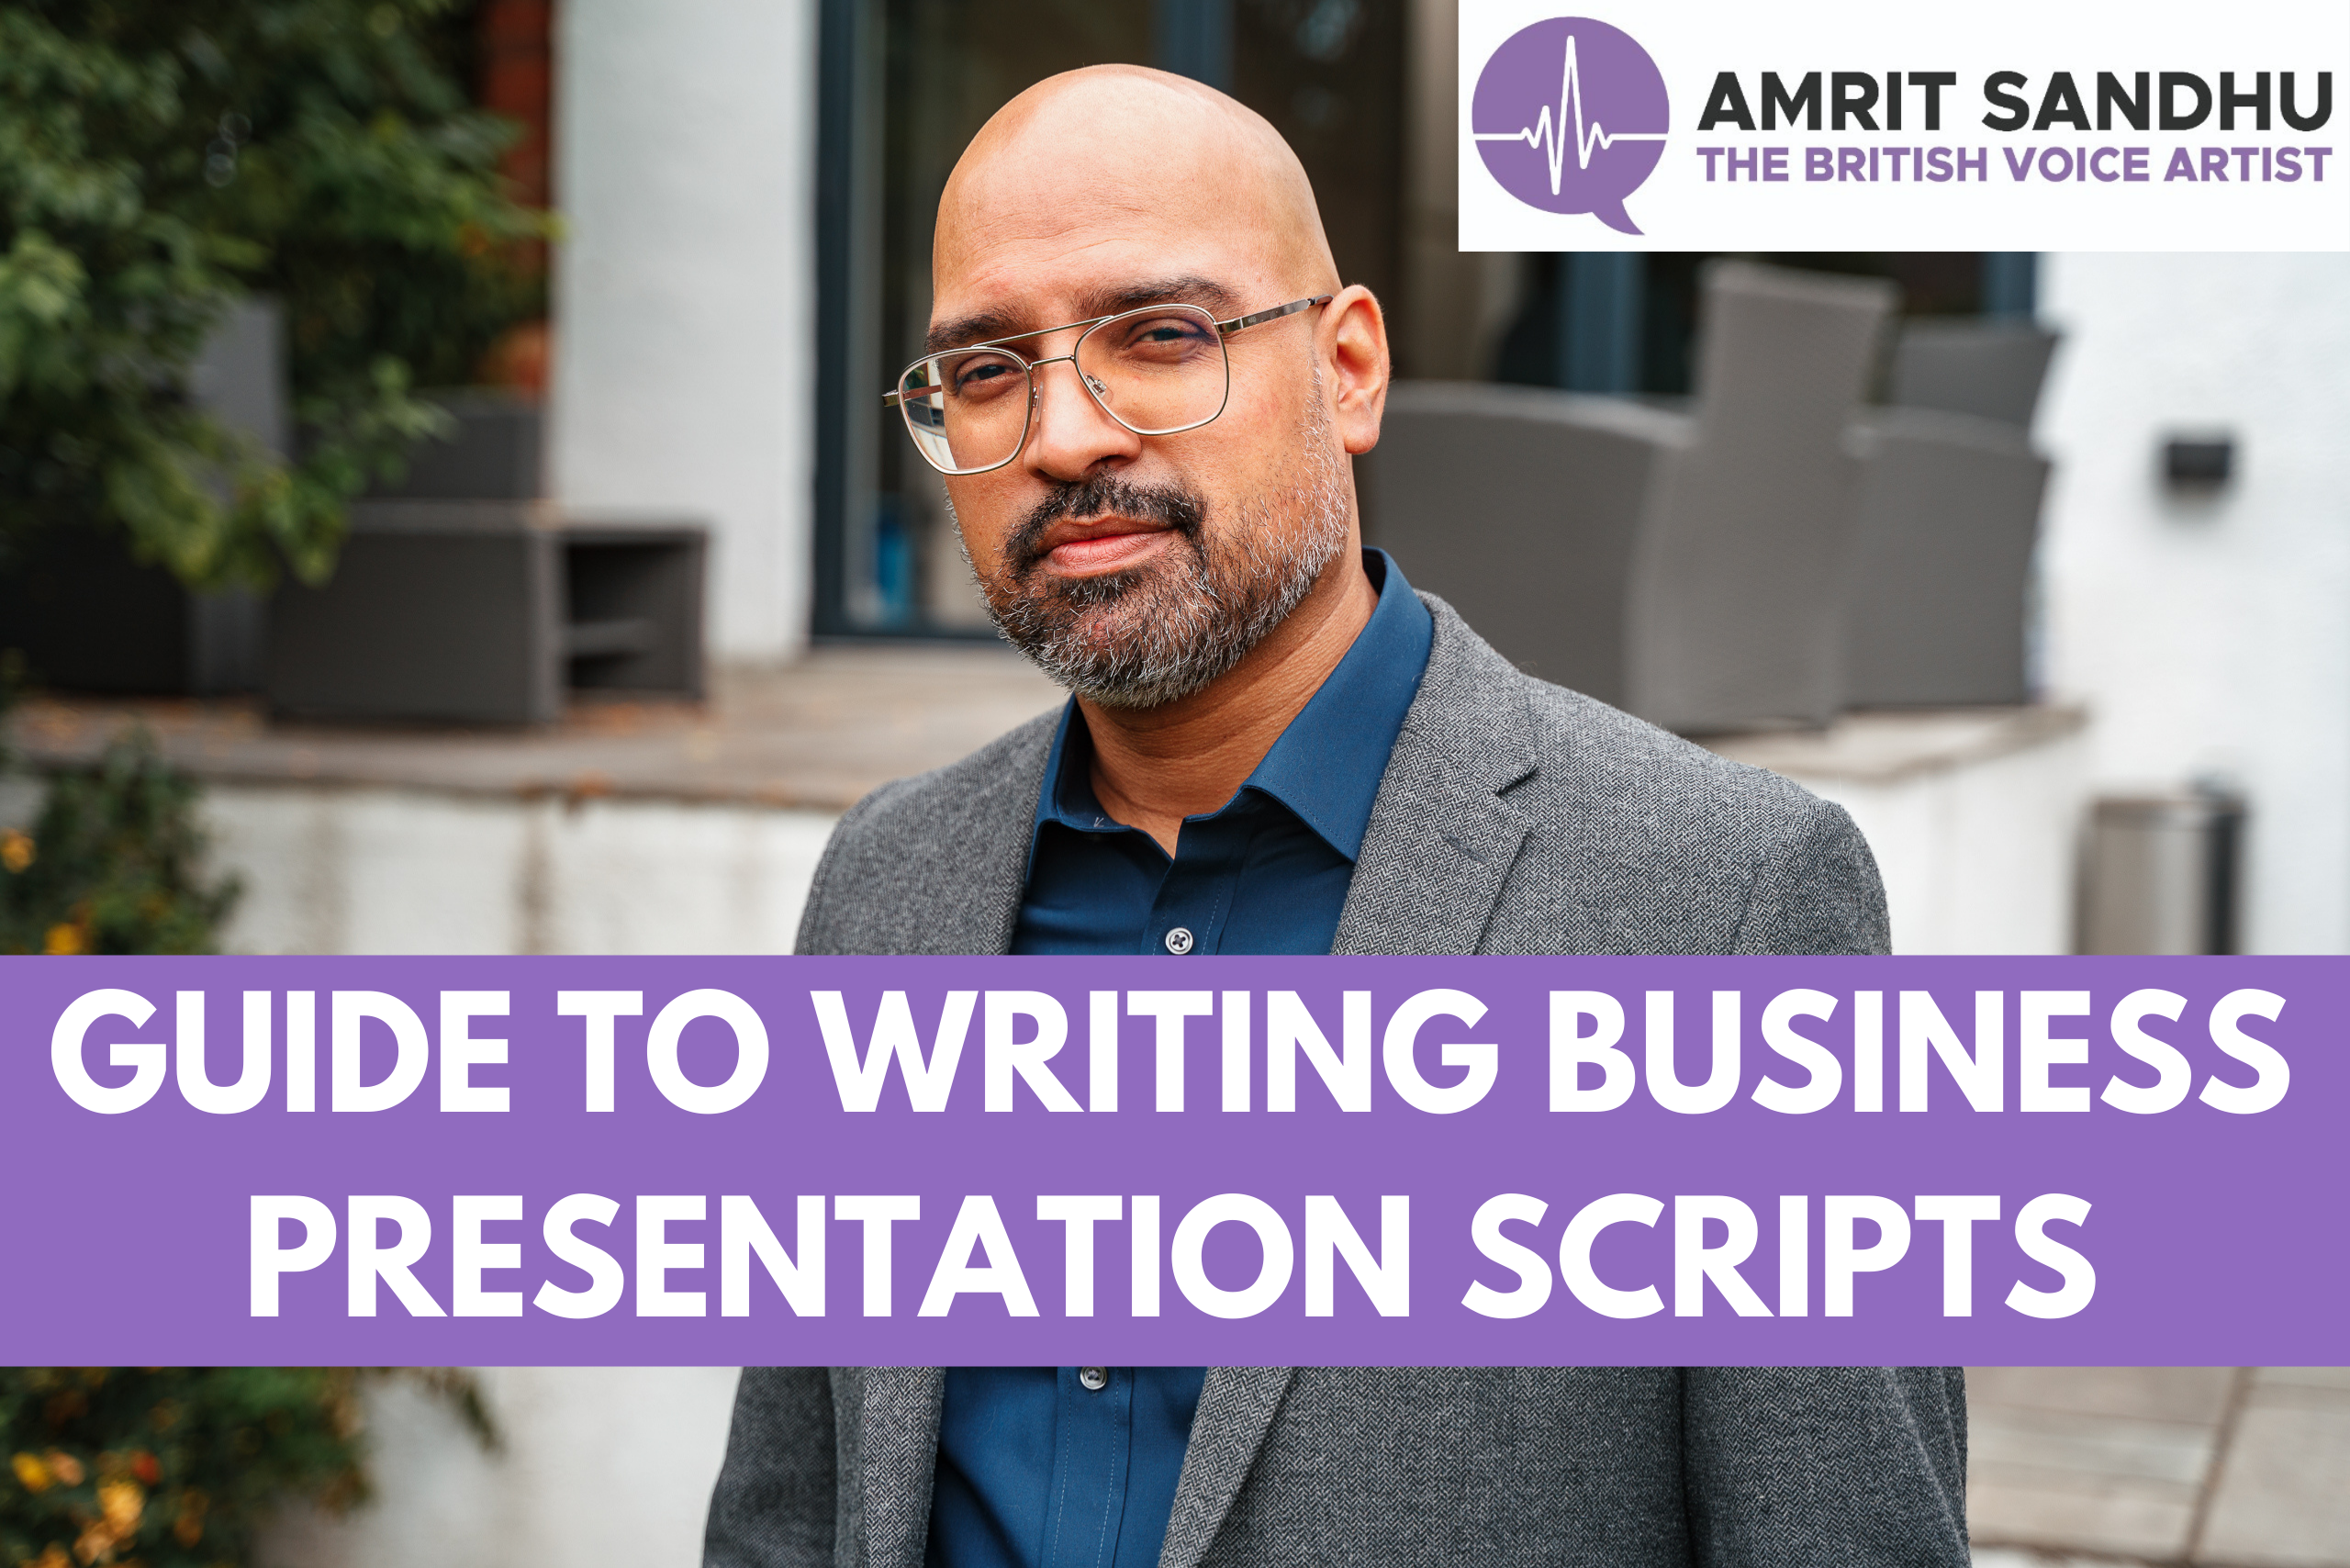 Quick Guide to Writing an Amazing Business Presentation Script